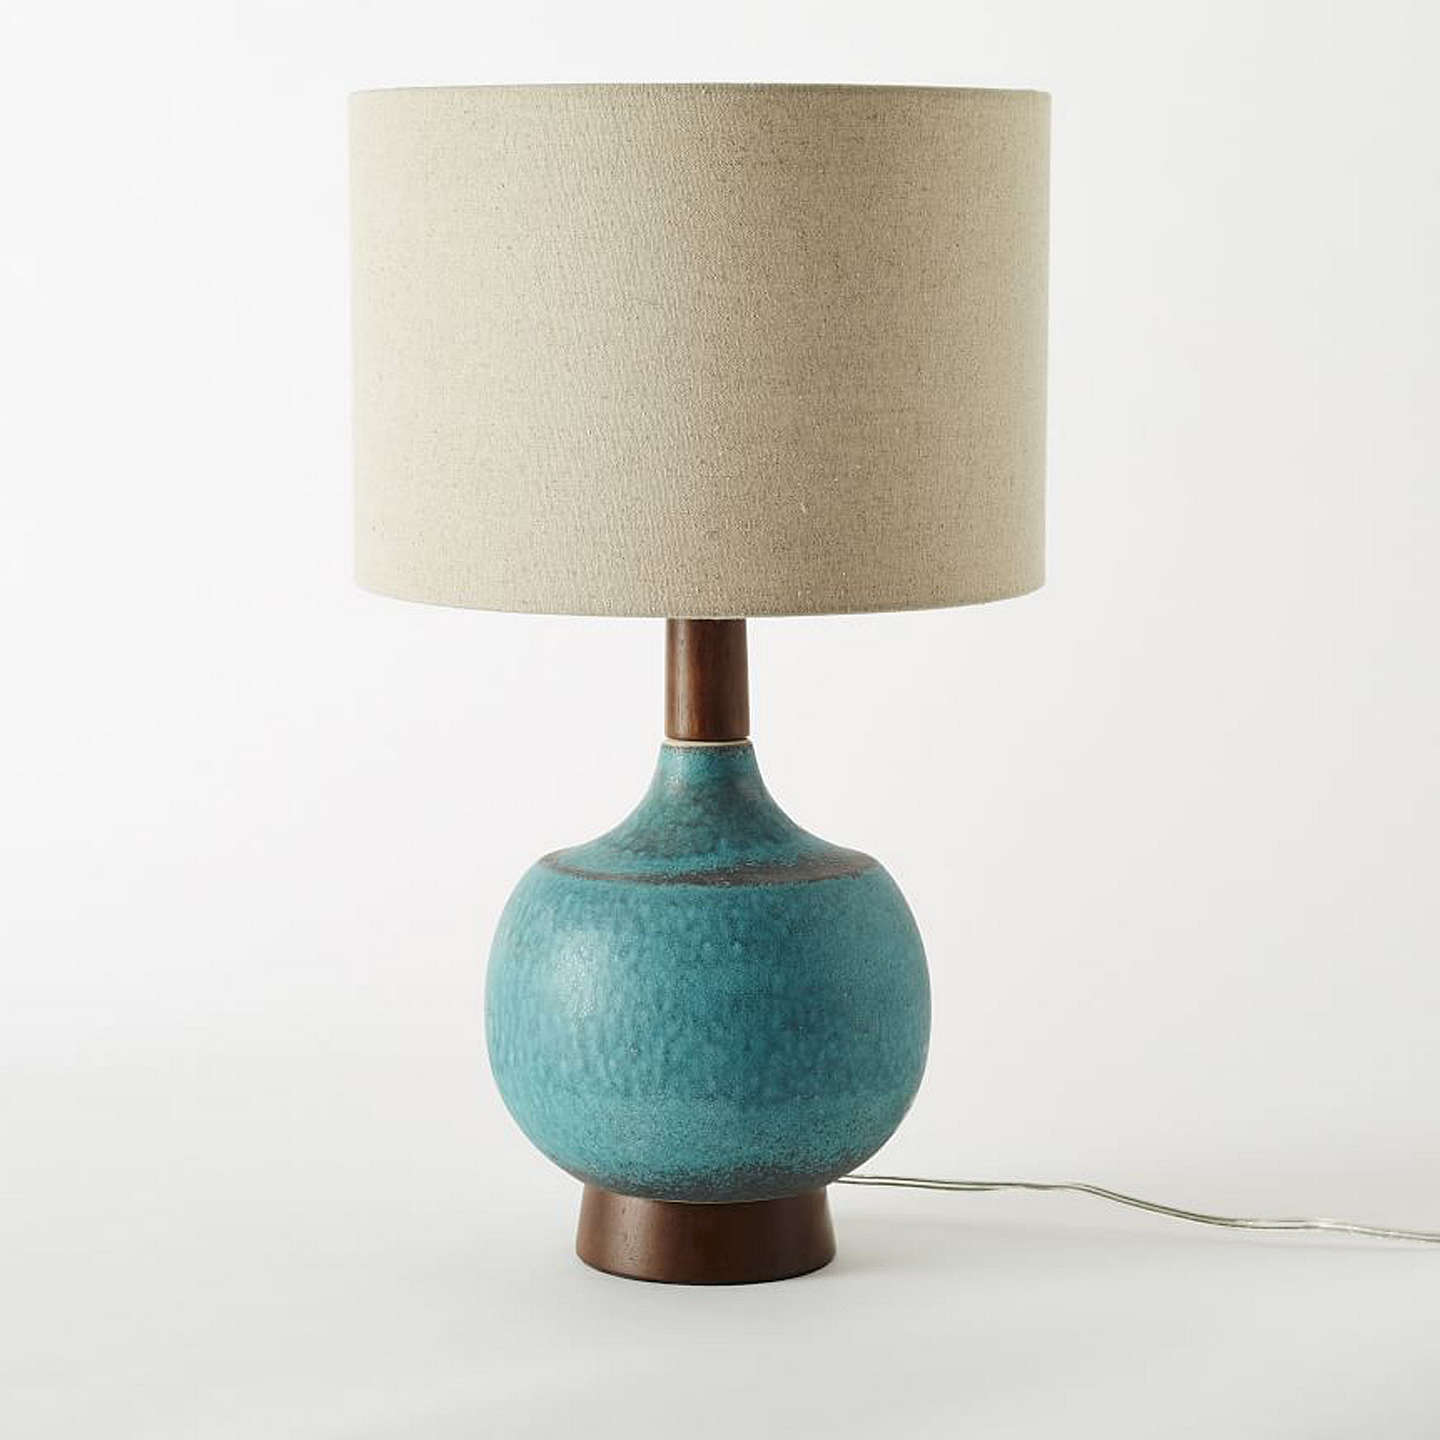 West elm modernist table lamp turquoise at john lewis buywest elm modernist table lamp turquoise online at johnlewis aloadofball Image collections